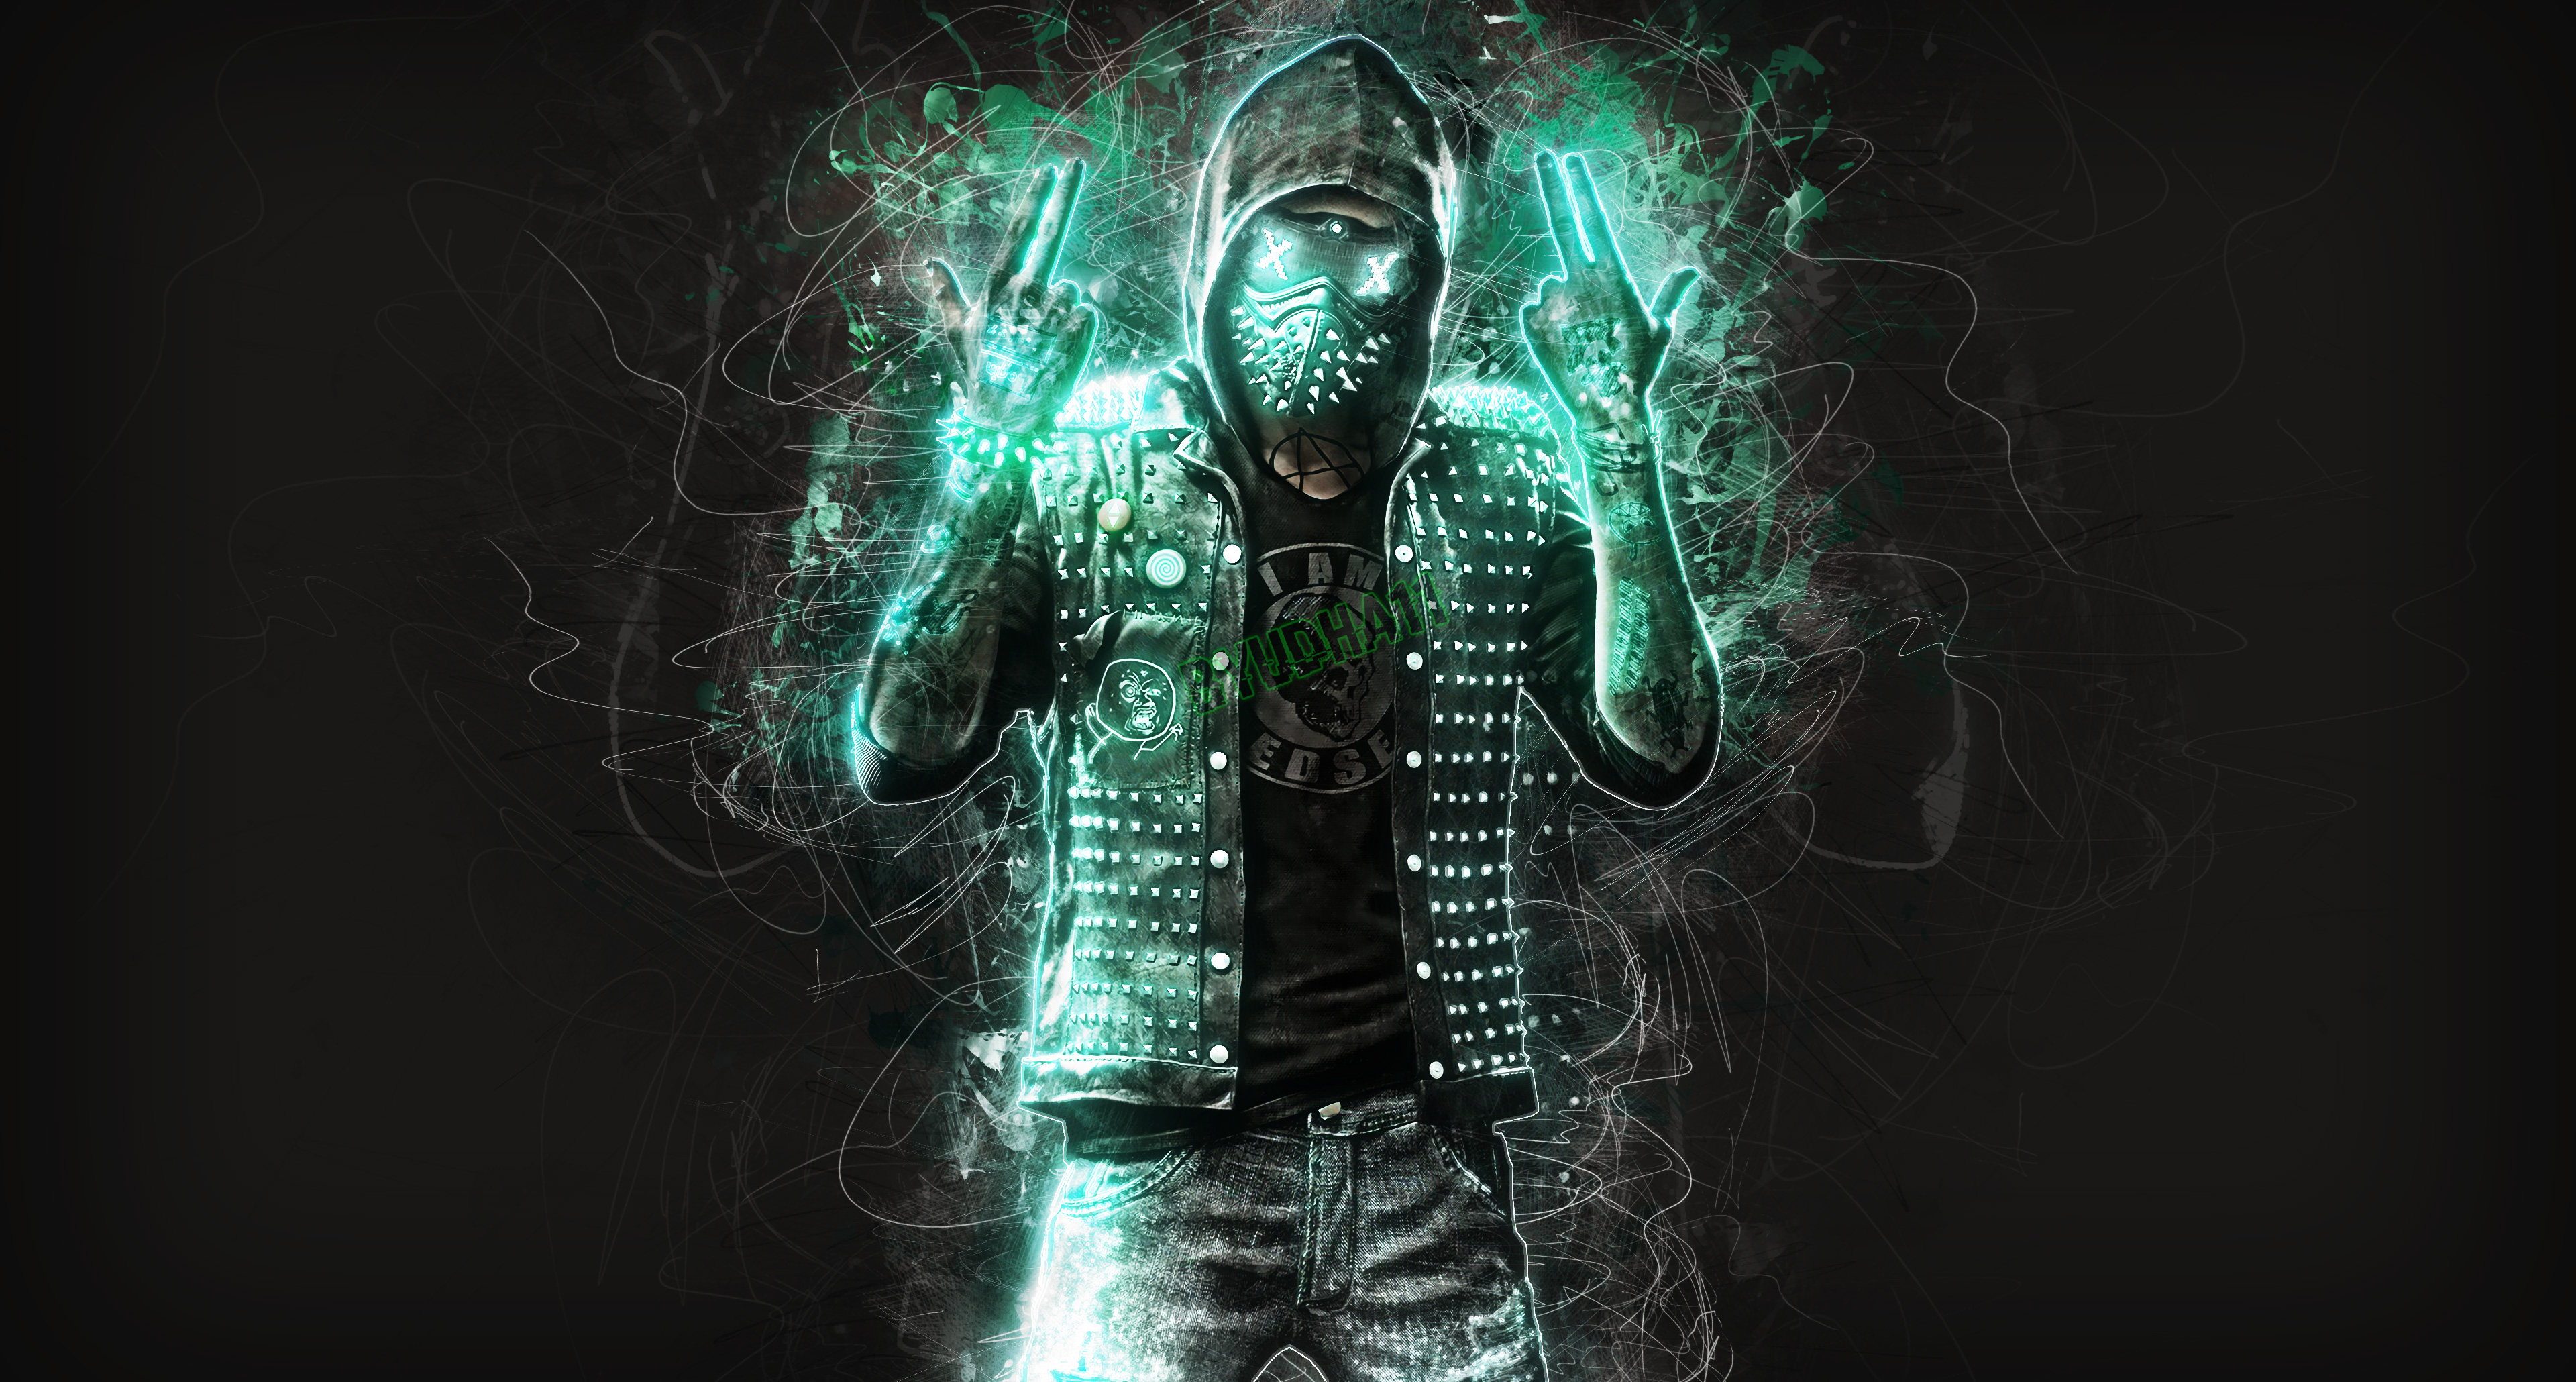 Wrench Watch Dogs 2 Fan Art Hd Games 4k Wallpapers Images